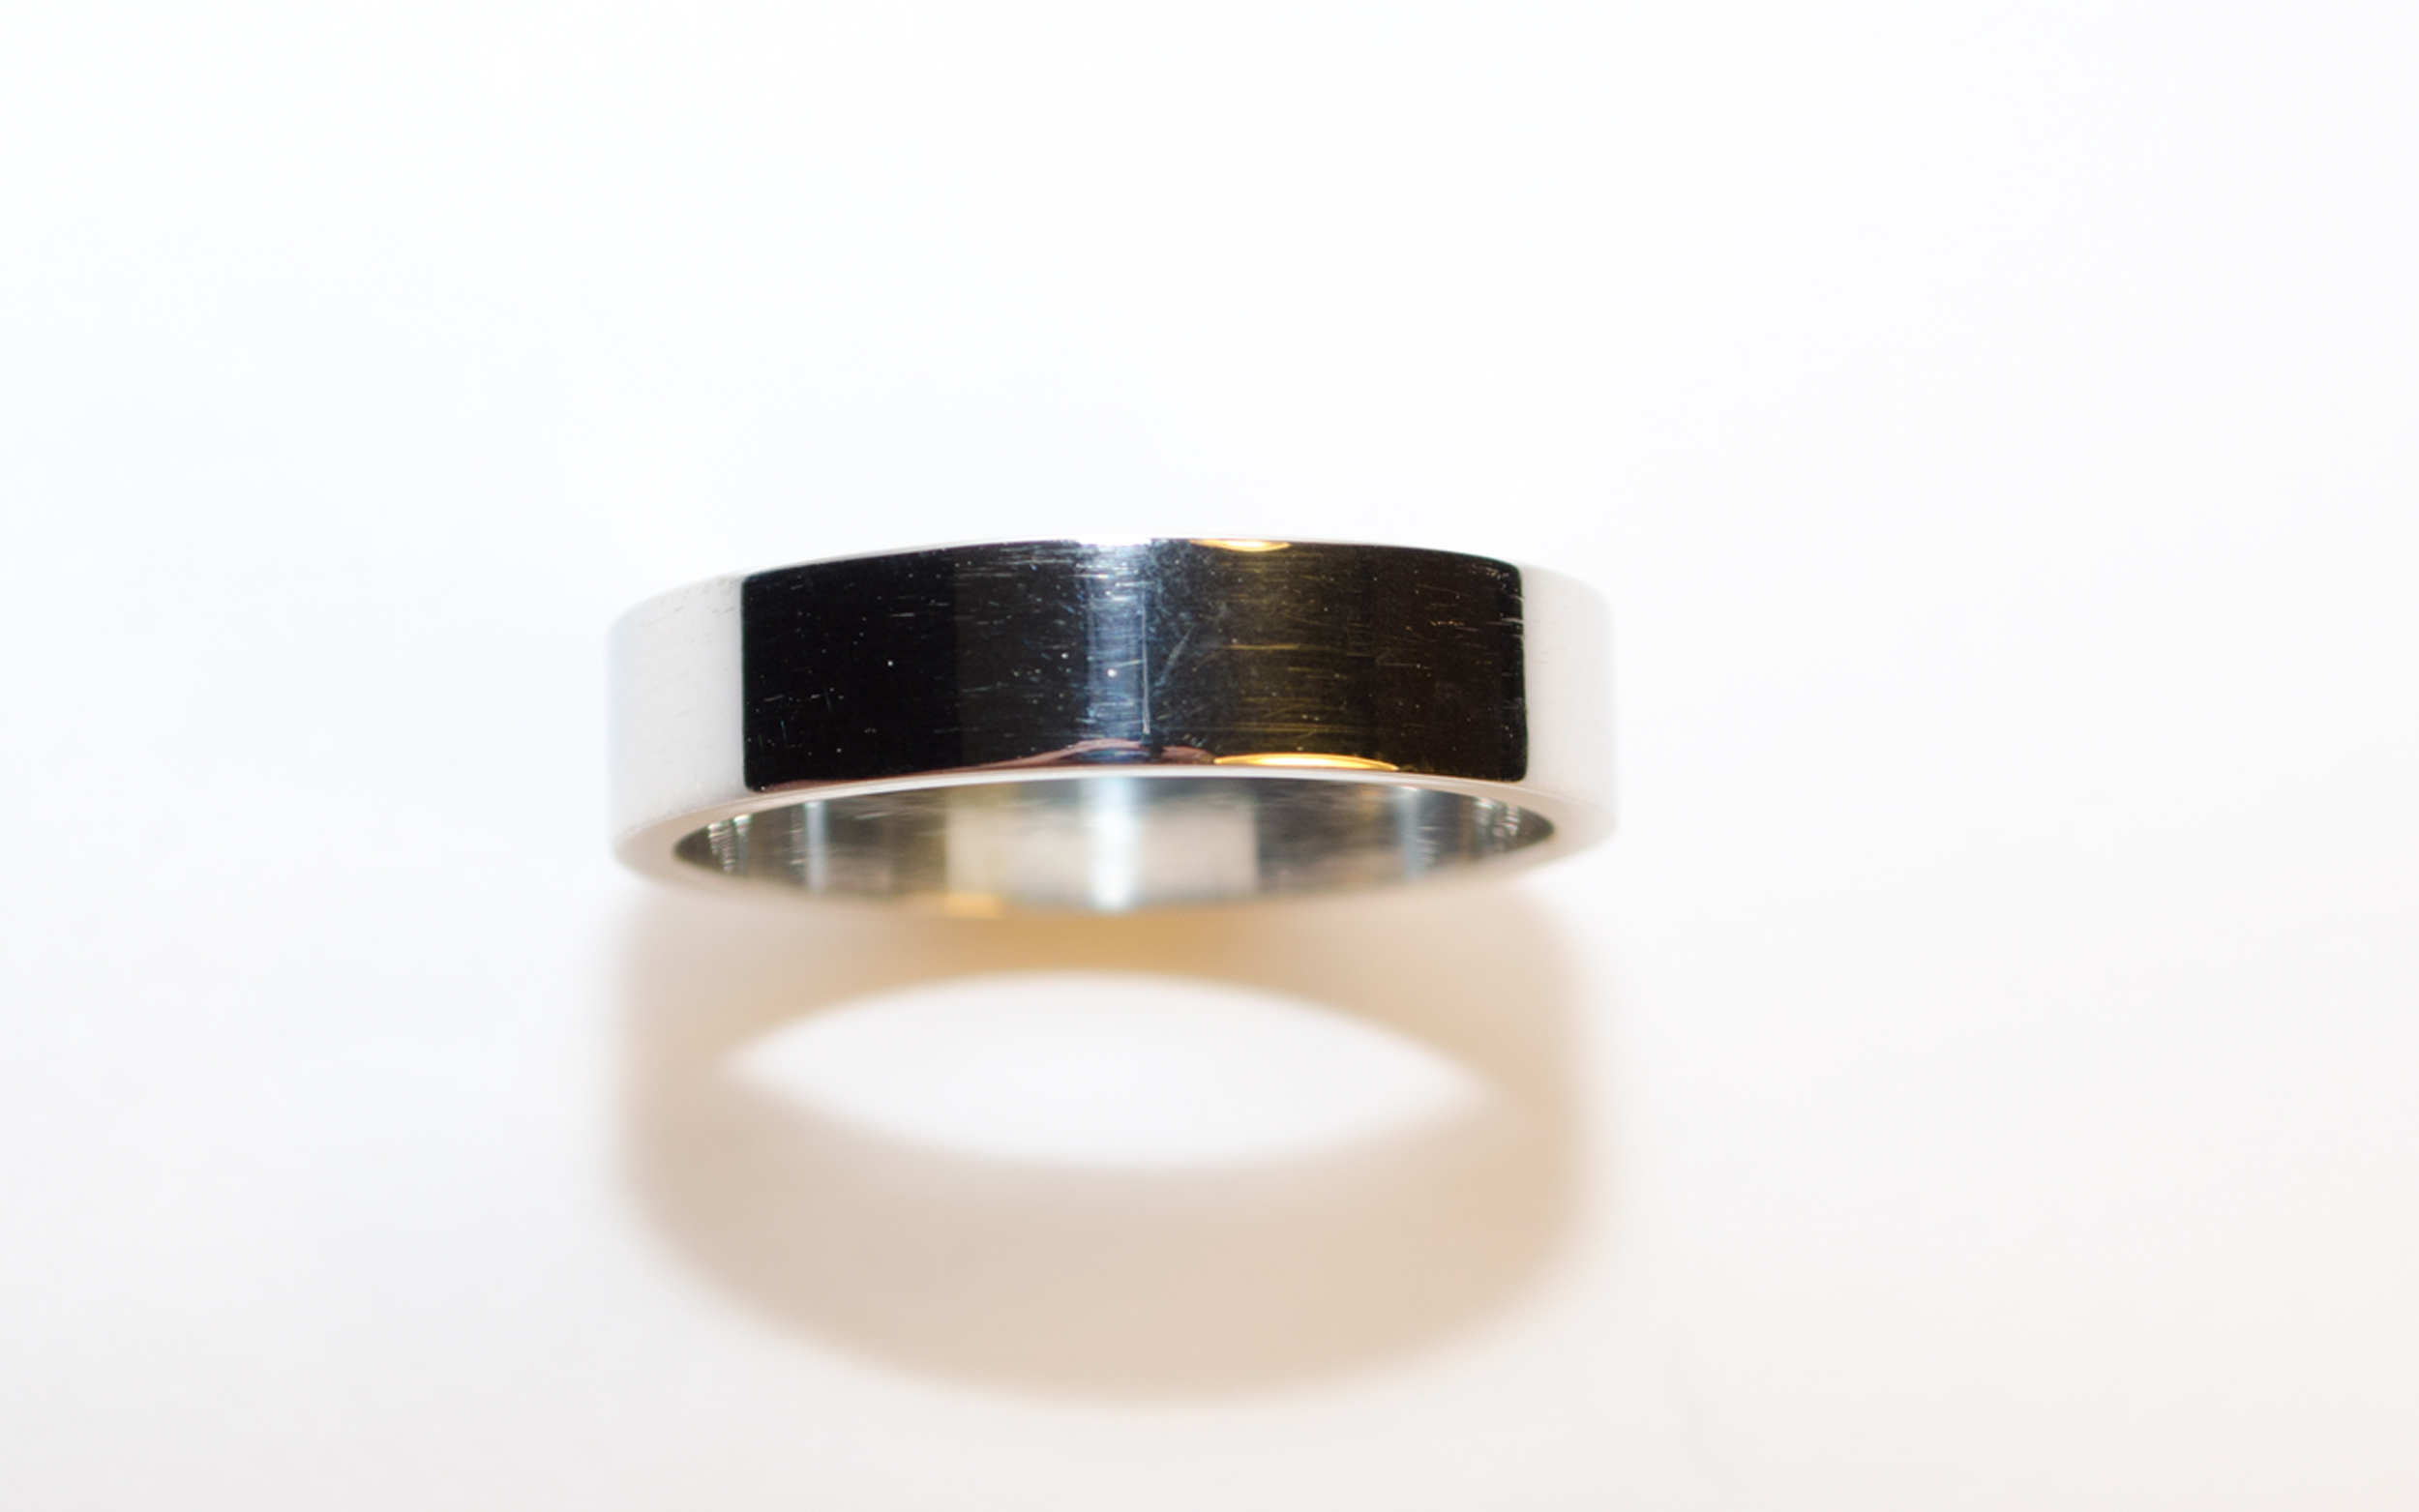 Image Result For Wedding Band That Fits Around Engagement Ring